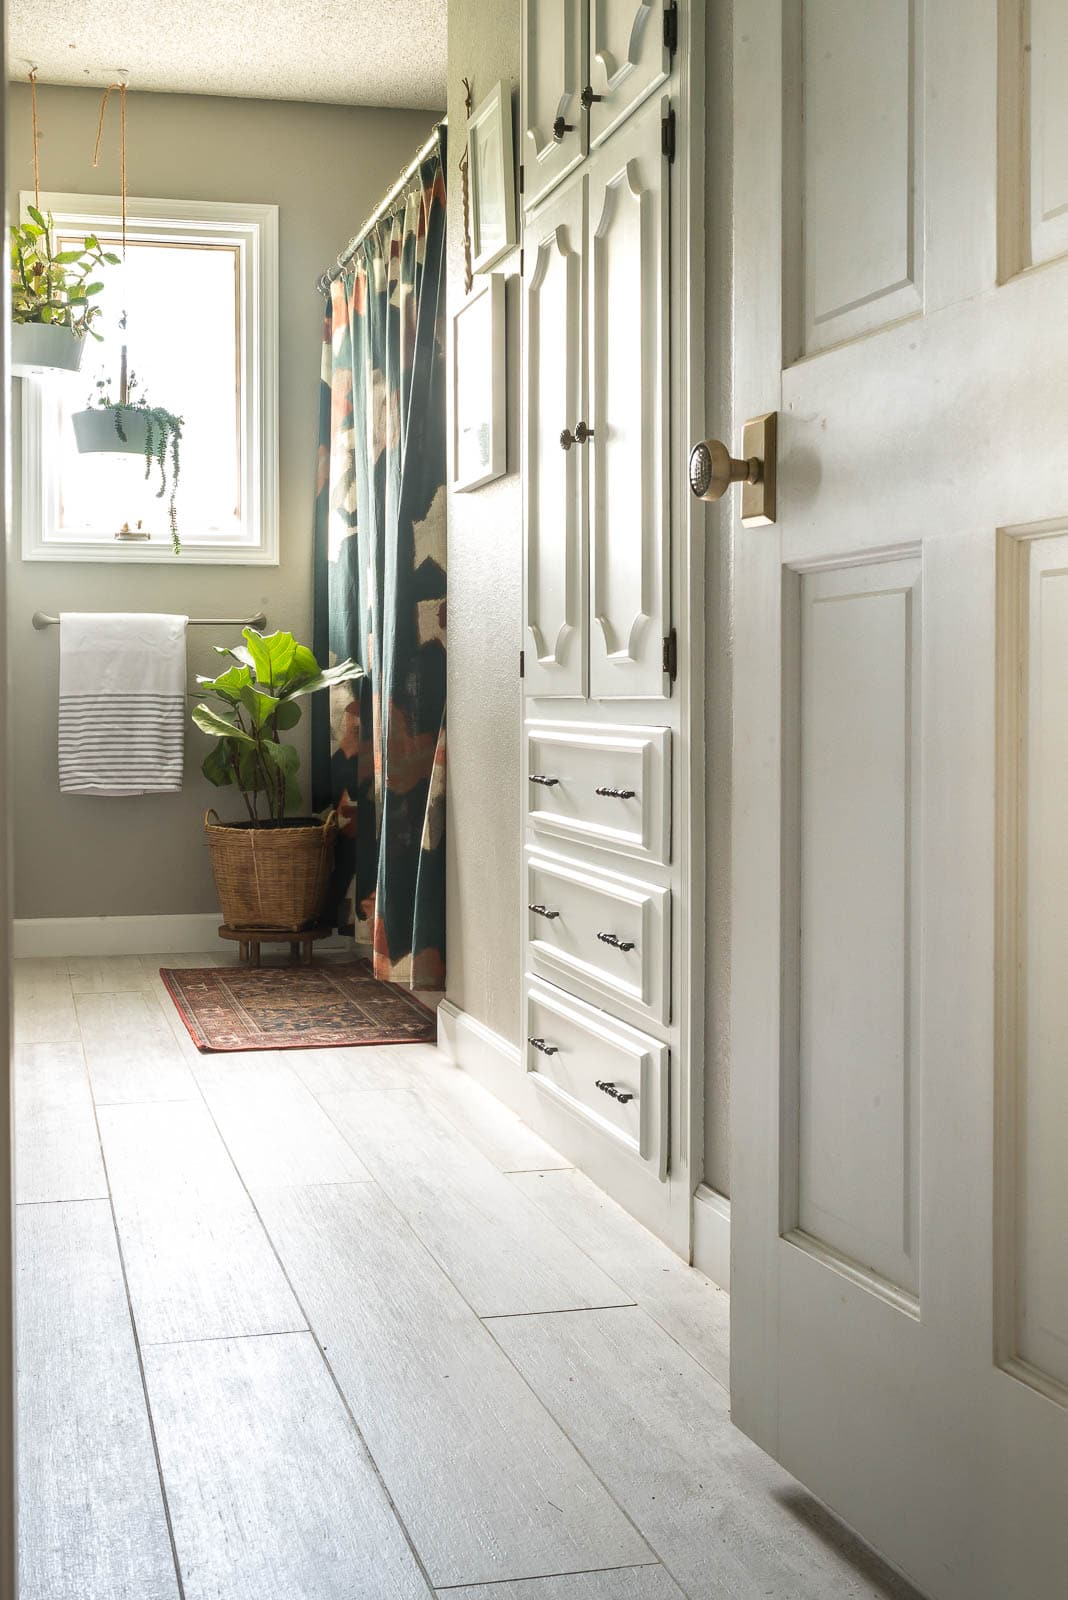 All about bathroom storage and organization